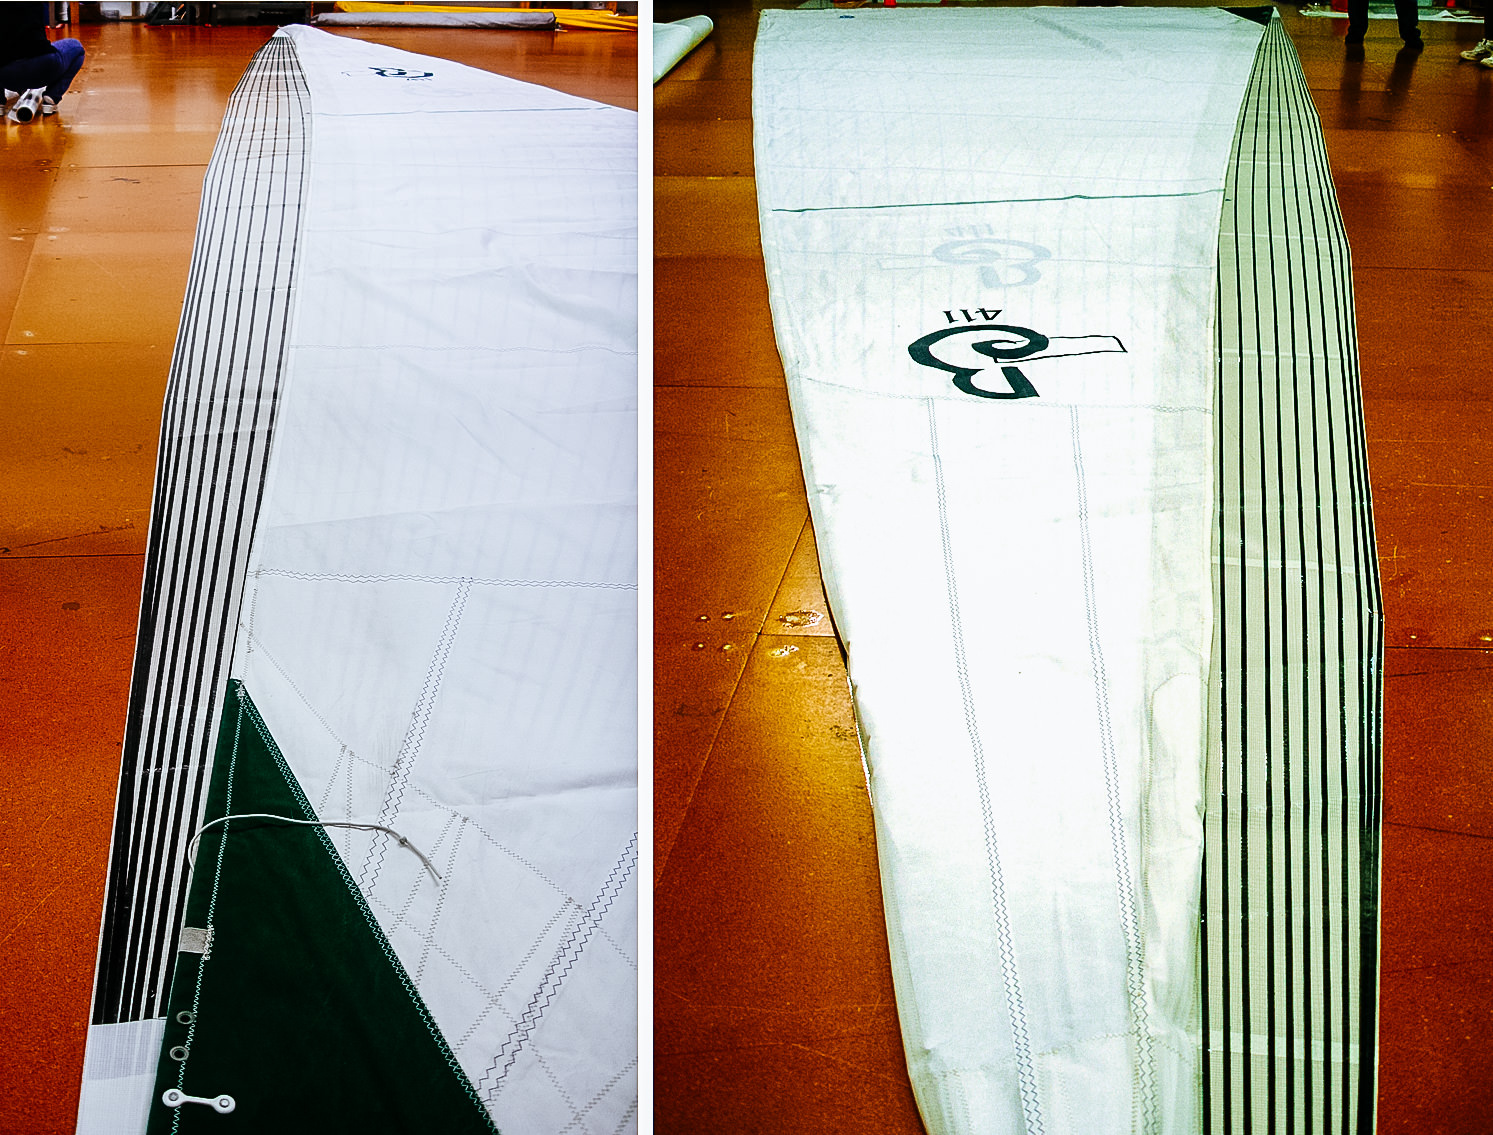 The pictures above illustrate how much bigger a vertical batten roller-furling mainsail is compared to a concave leech batten-less main. In the pictures, the Dacron batten-less main for a Beneteau 411 is laying over its partially finished replacement main, which is a vertical batten Tape-Drive sail.